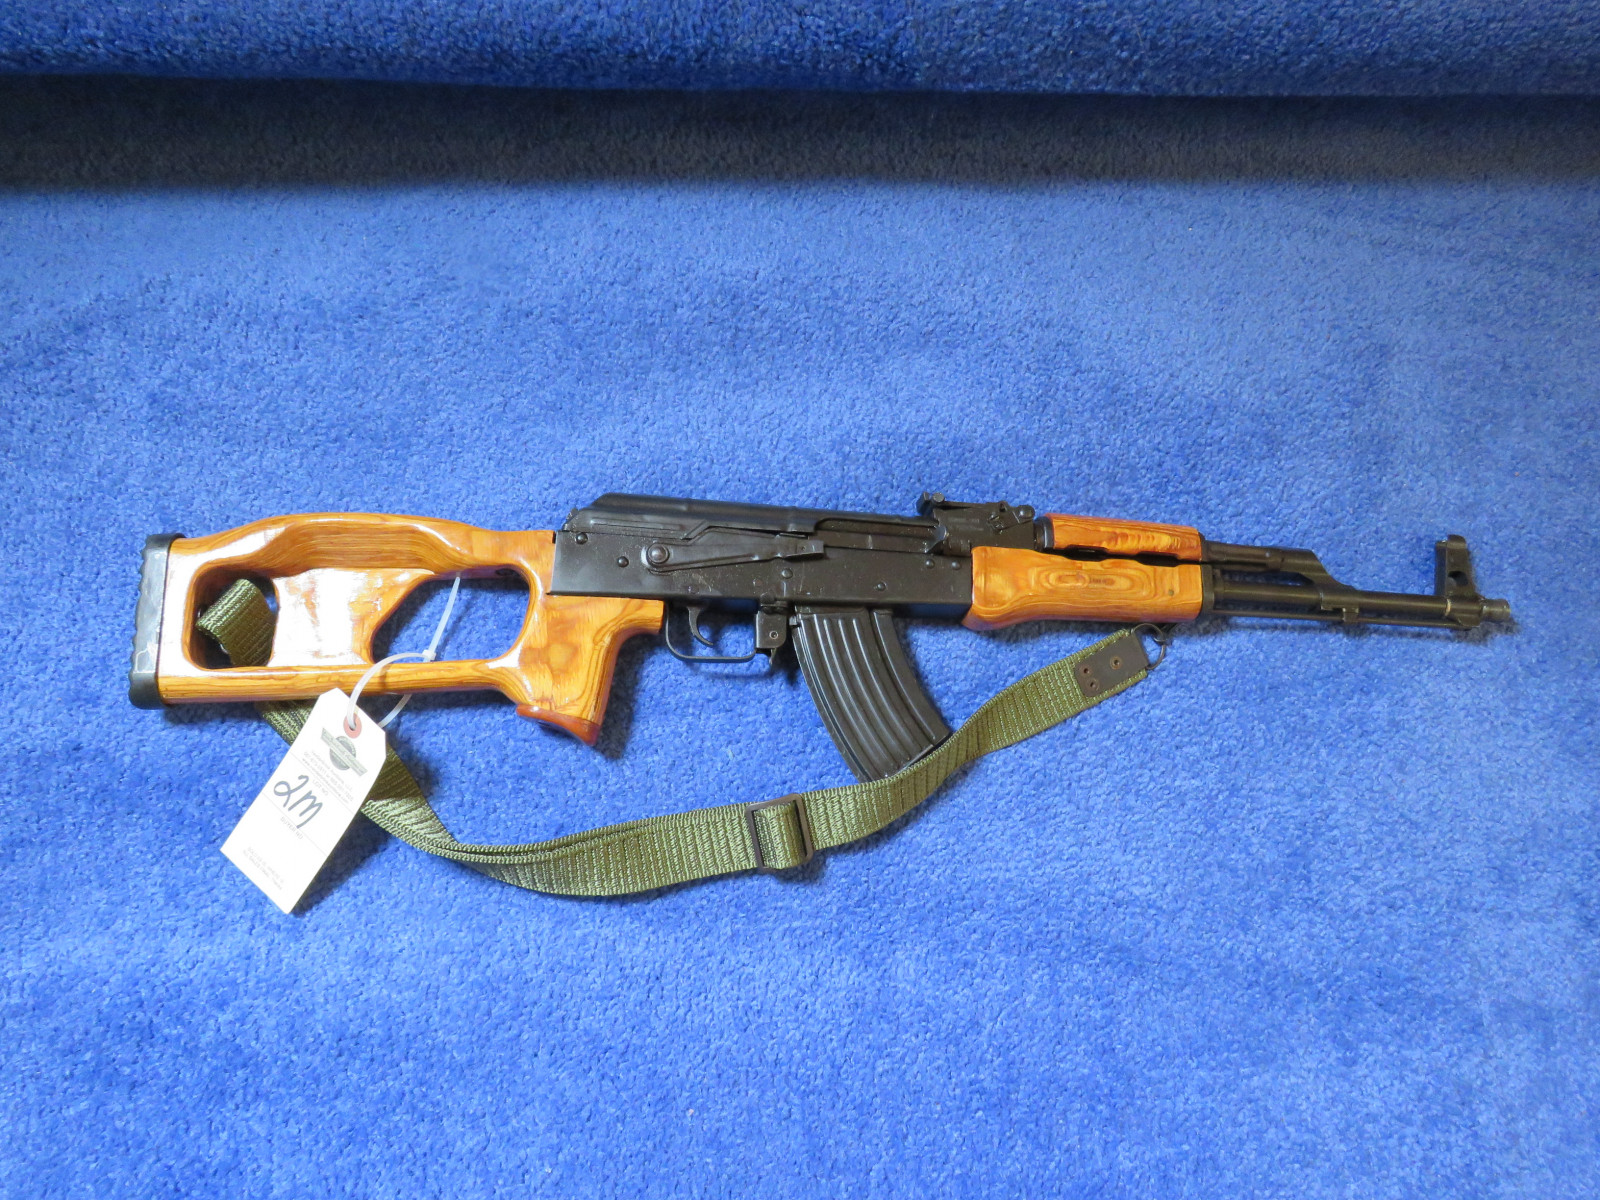 Romak 990 Semi-Automatic Rifle 7.62x39mm  1-060Z3-99 - Image 1